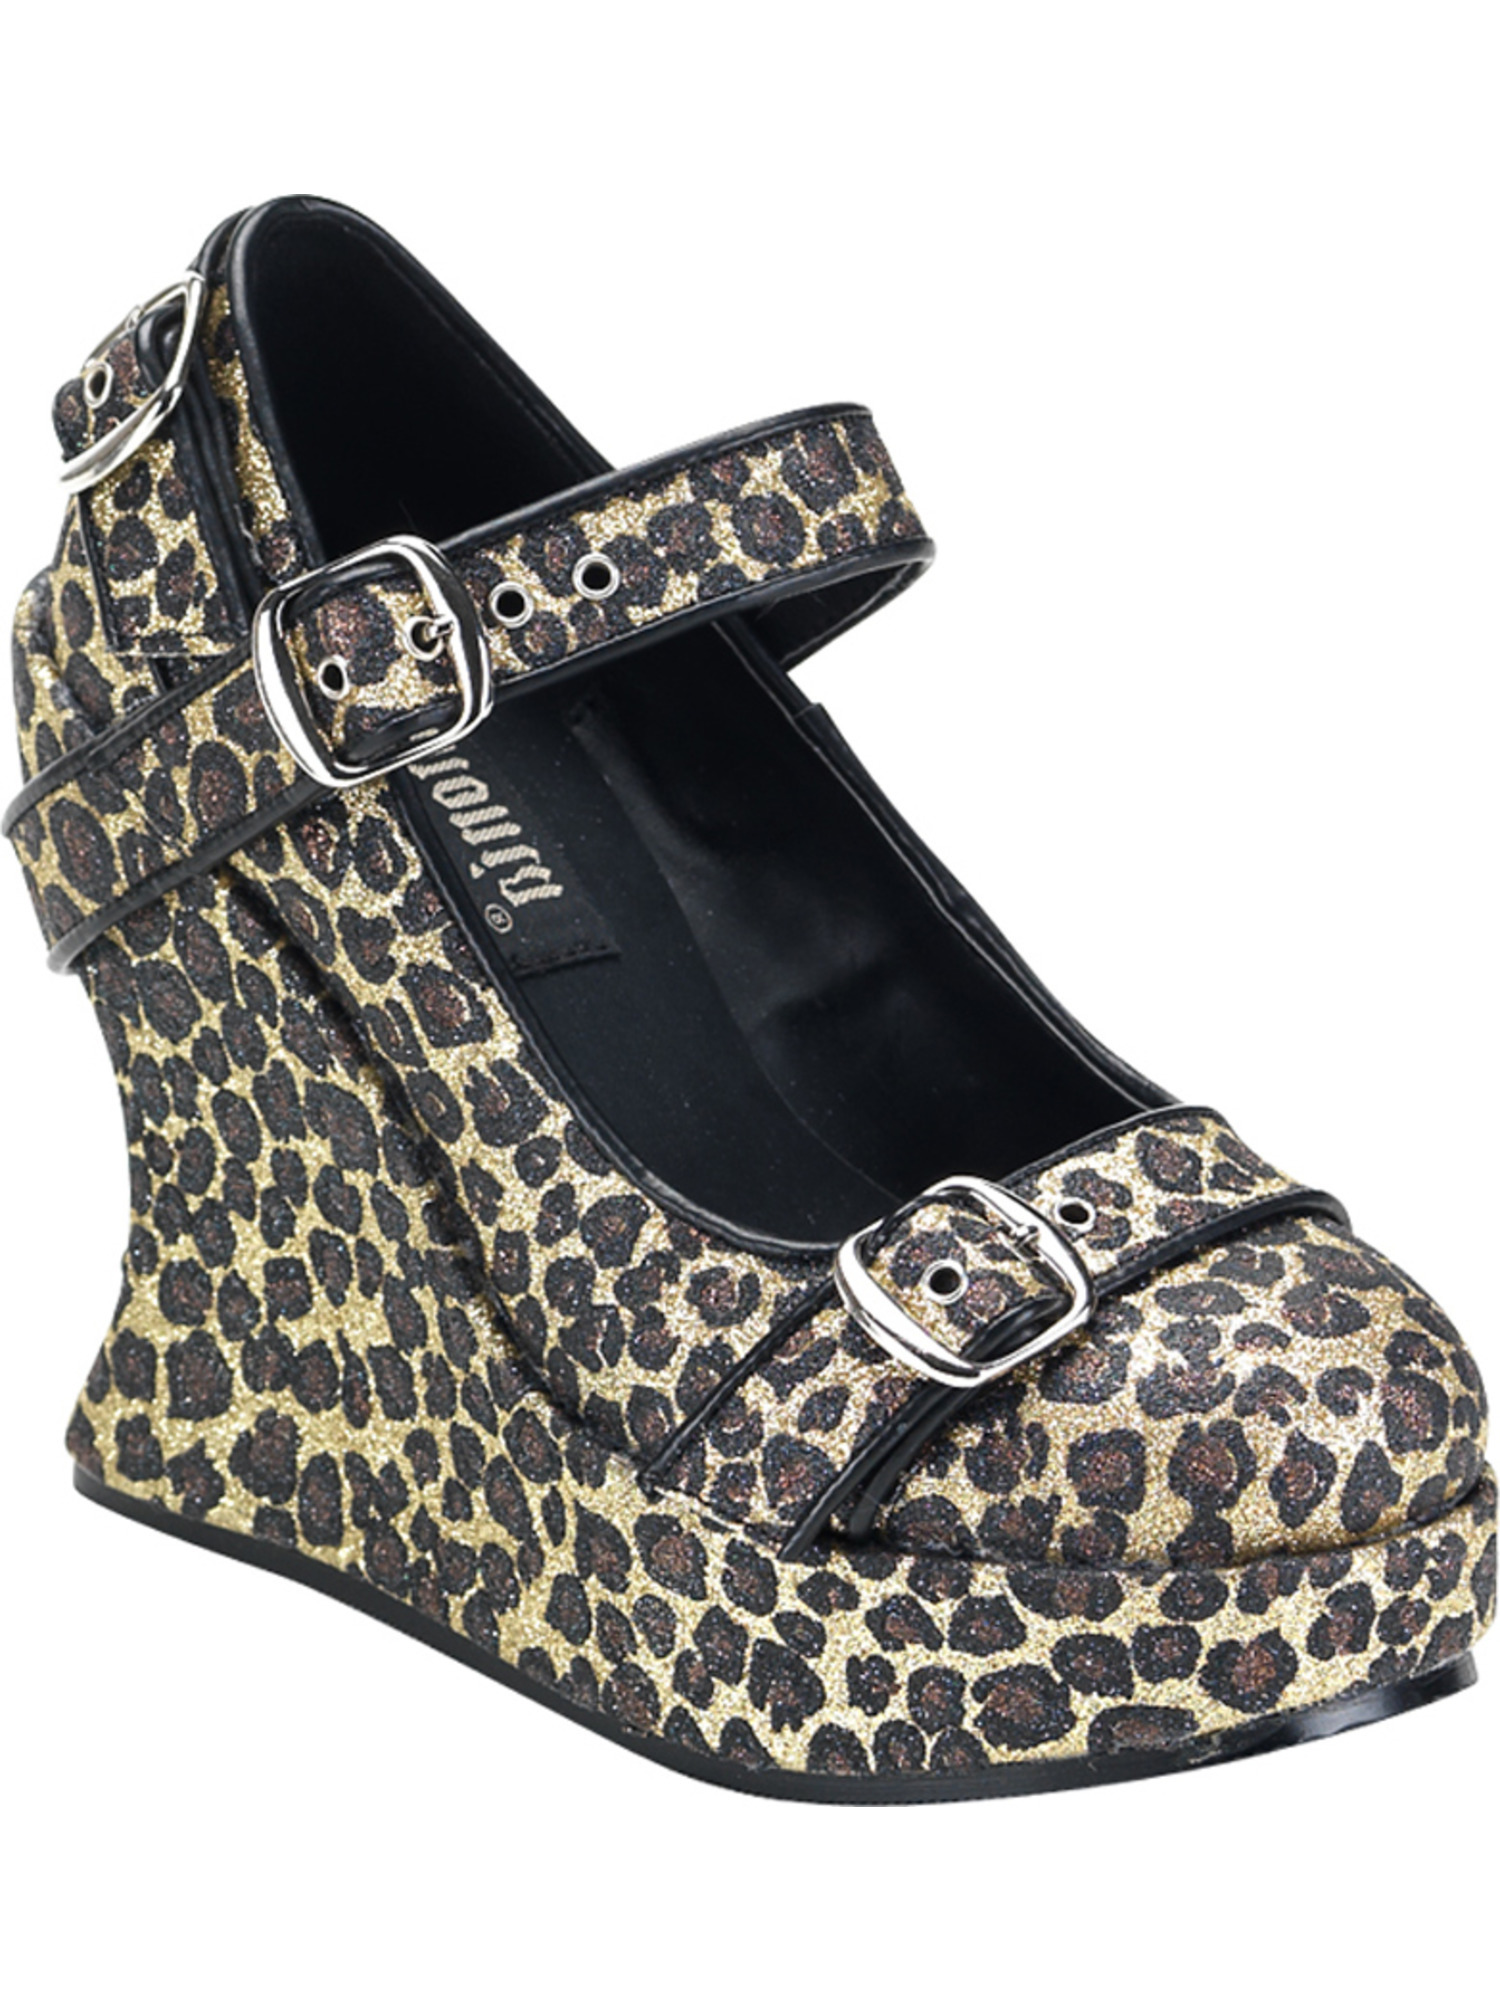 5 Inch Sexy Platform Wedge Shoe Glitter Shoes Cheetah Animal Print Shoes